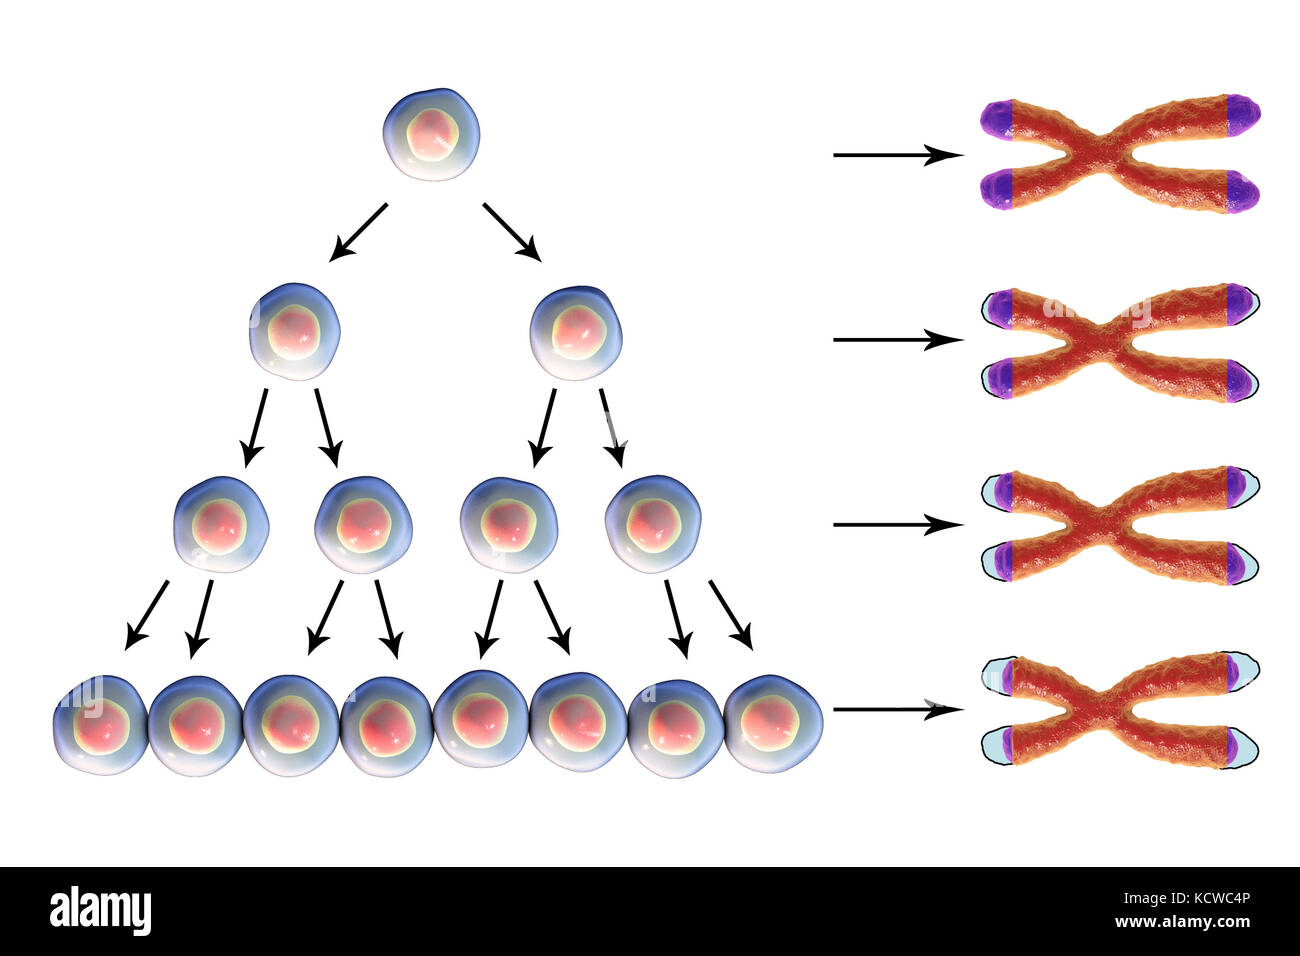 Telomere shortening with each round of cell division, conceptual illustration. Telomeres, the caps on chromosomes, - Stock Image